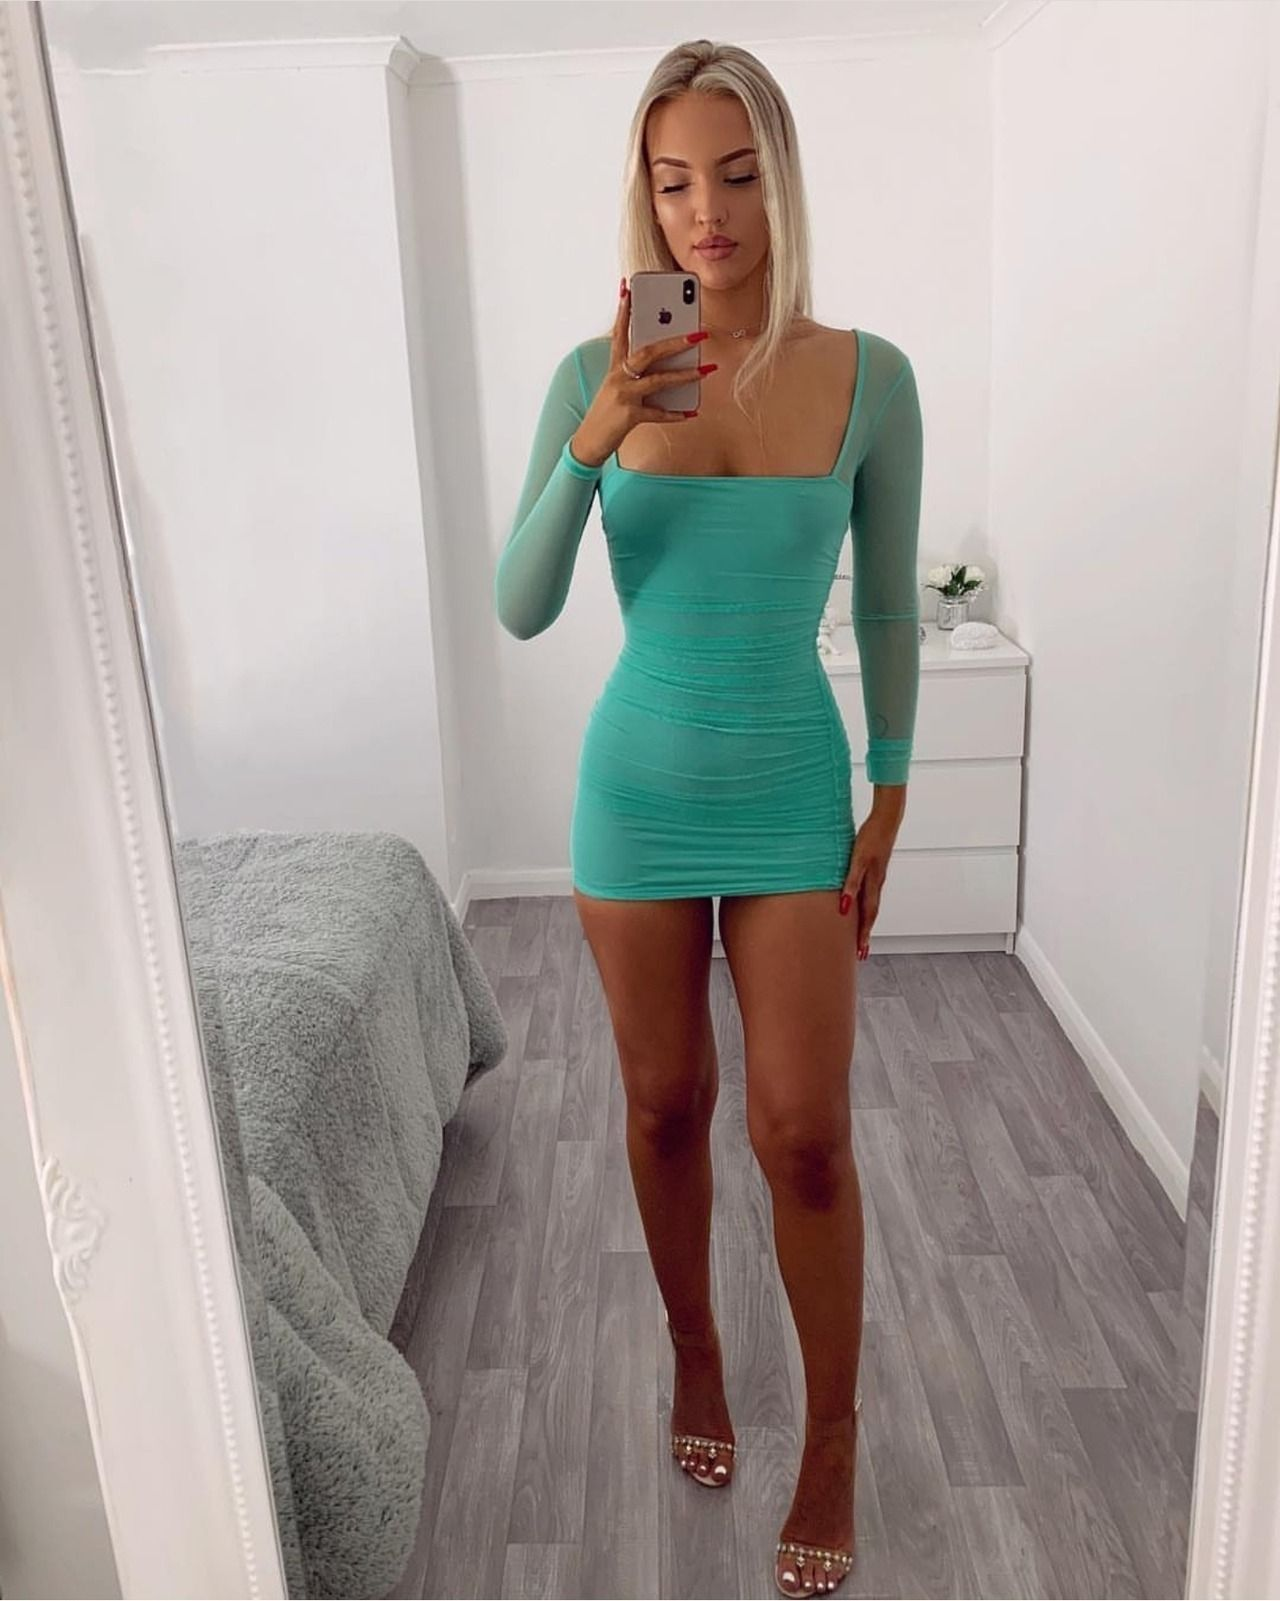 Pin by Maggie on Outfit Ideas   Mini skirts, Tight dresses